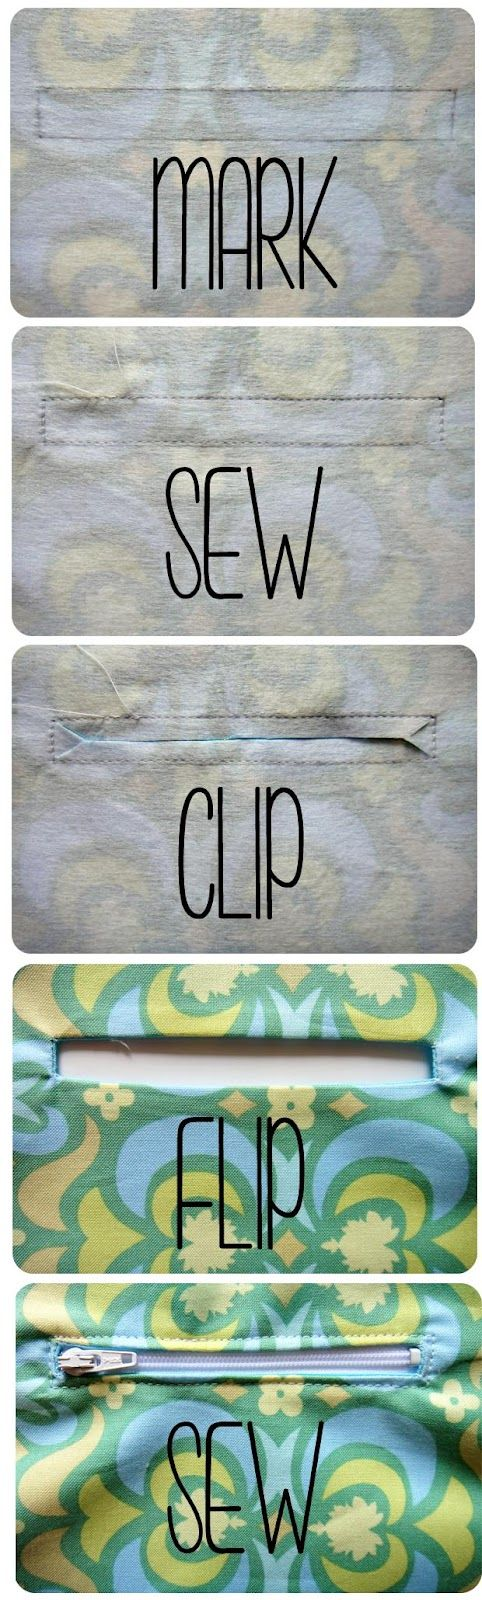 Pocket Zipper. Finally a tutorial that I can understand on how to sew in a pocket zipper! via the Gilded Hare.